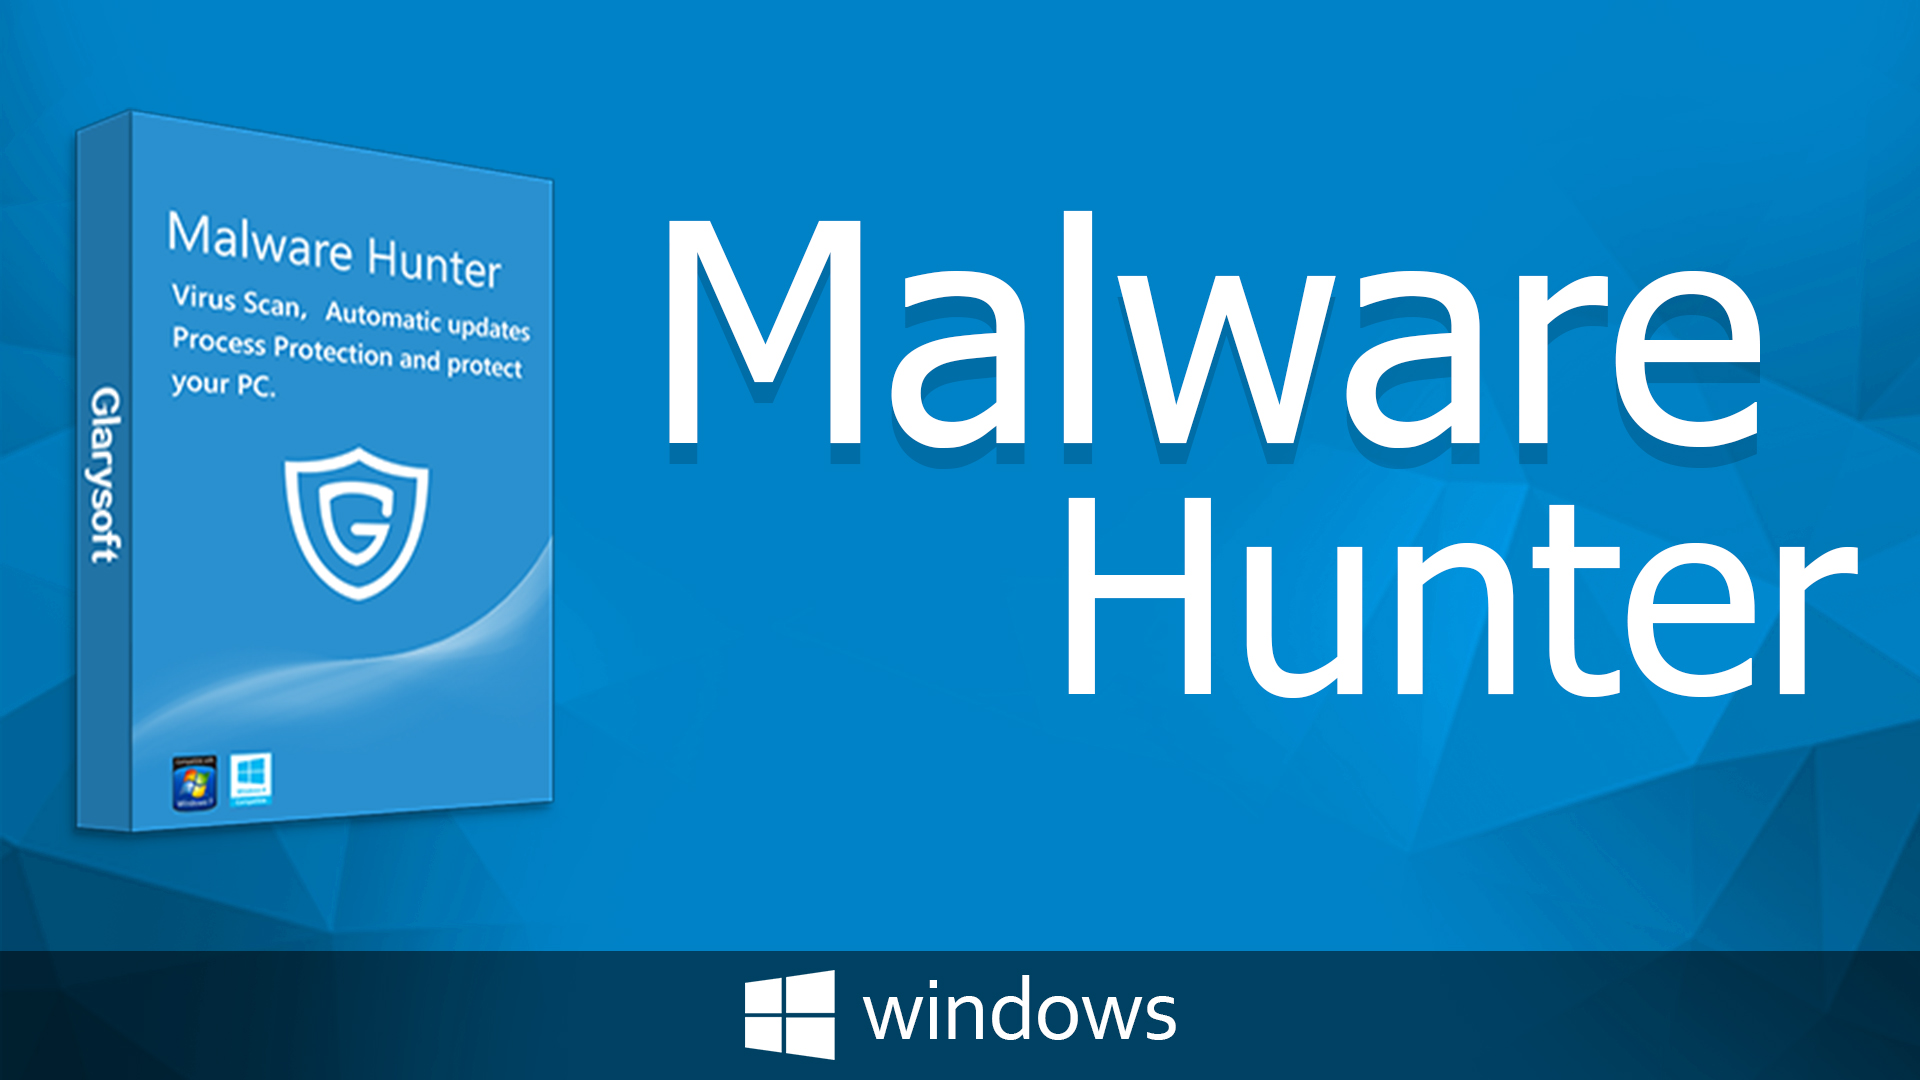 Malware Hunter Pro for 1 year for 3 PCs (GLOBAL) 2019